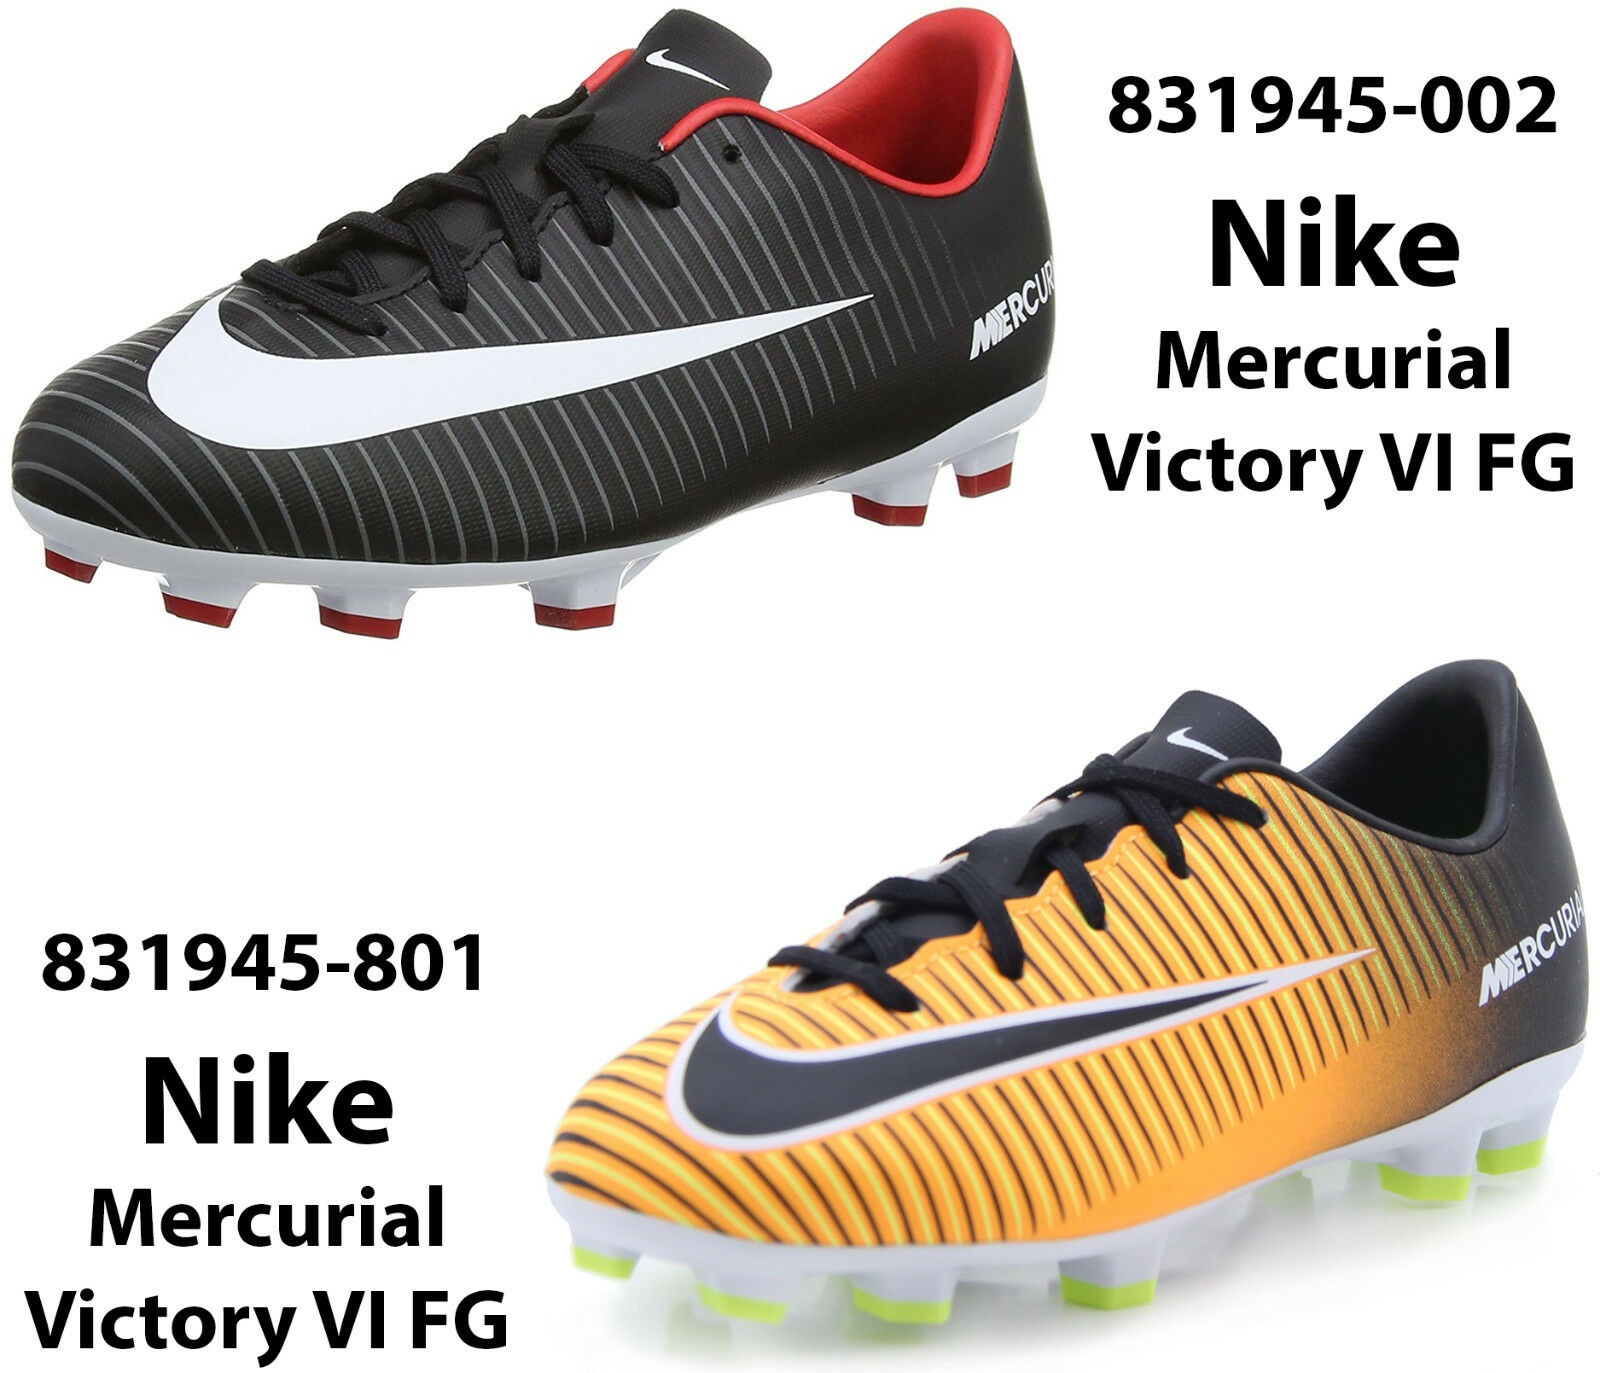 e627bc08ea5 NIKE JR MERCURIAL VICTORY VI FG Boys Soccer Cleats FG Firm Ground shoes New